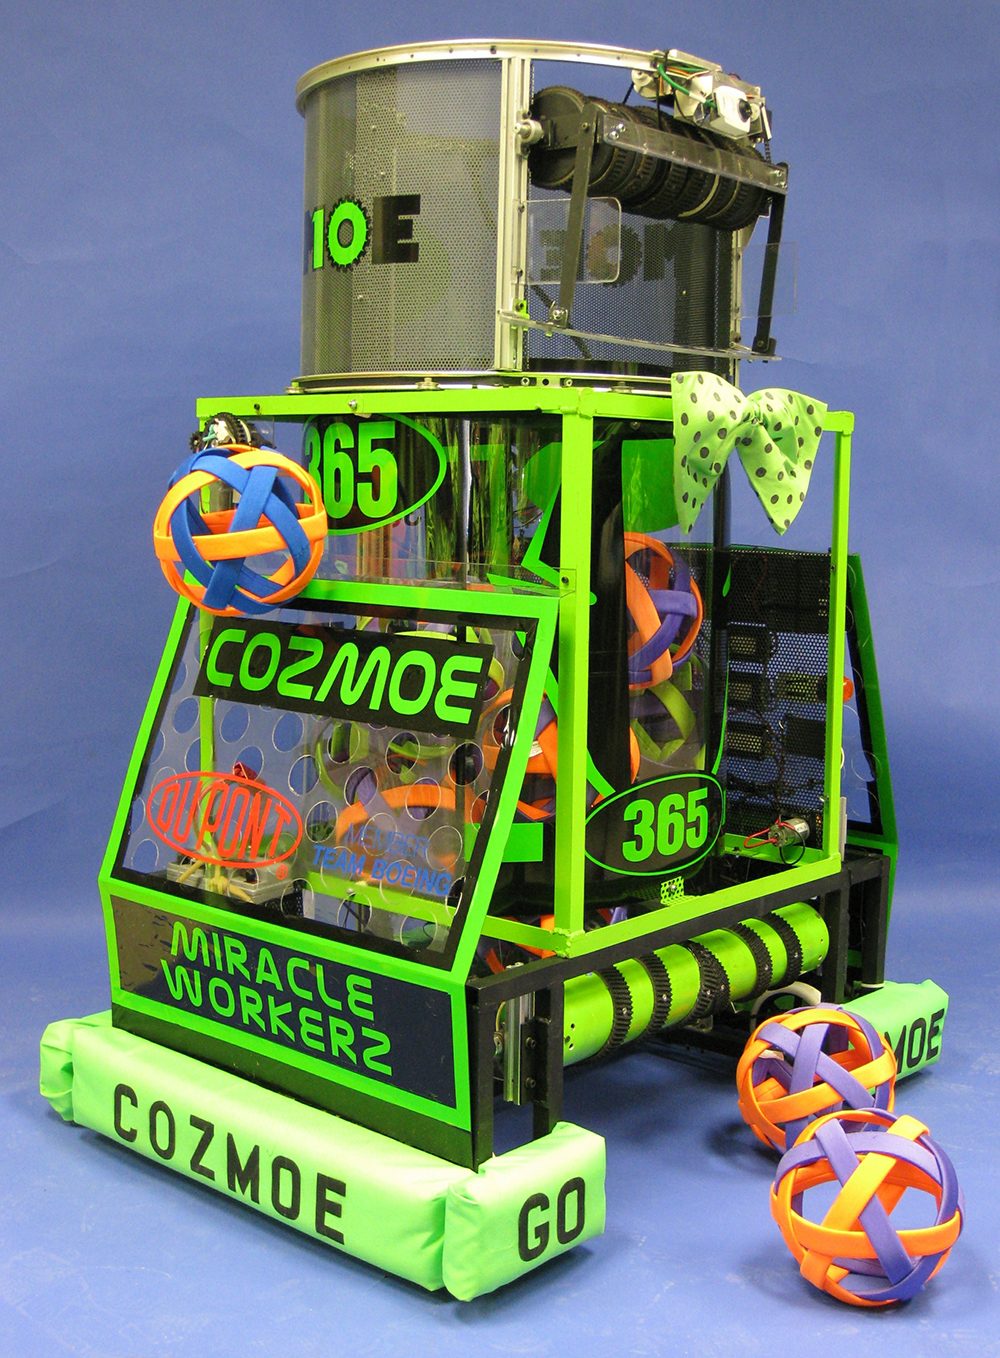 Photograph of Cozmoe, FIRST State Robotics robot, 2010